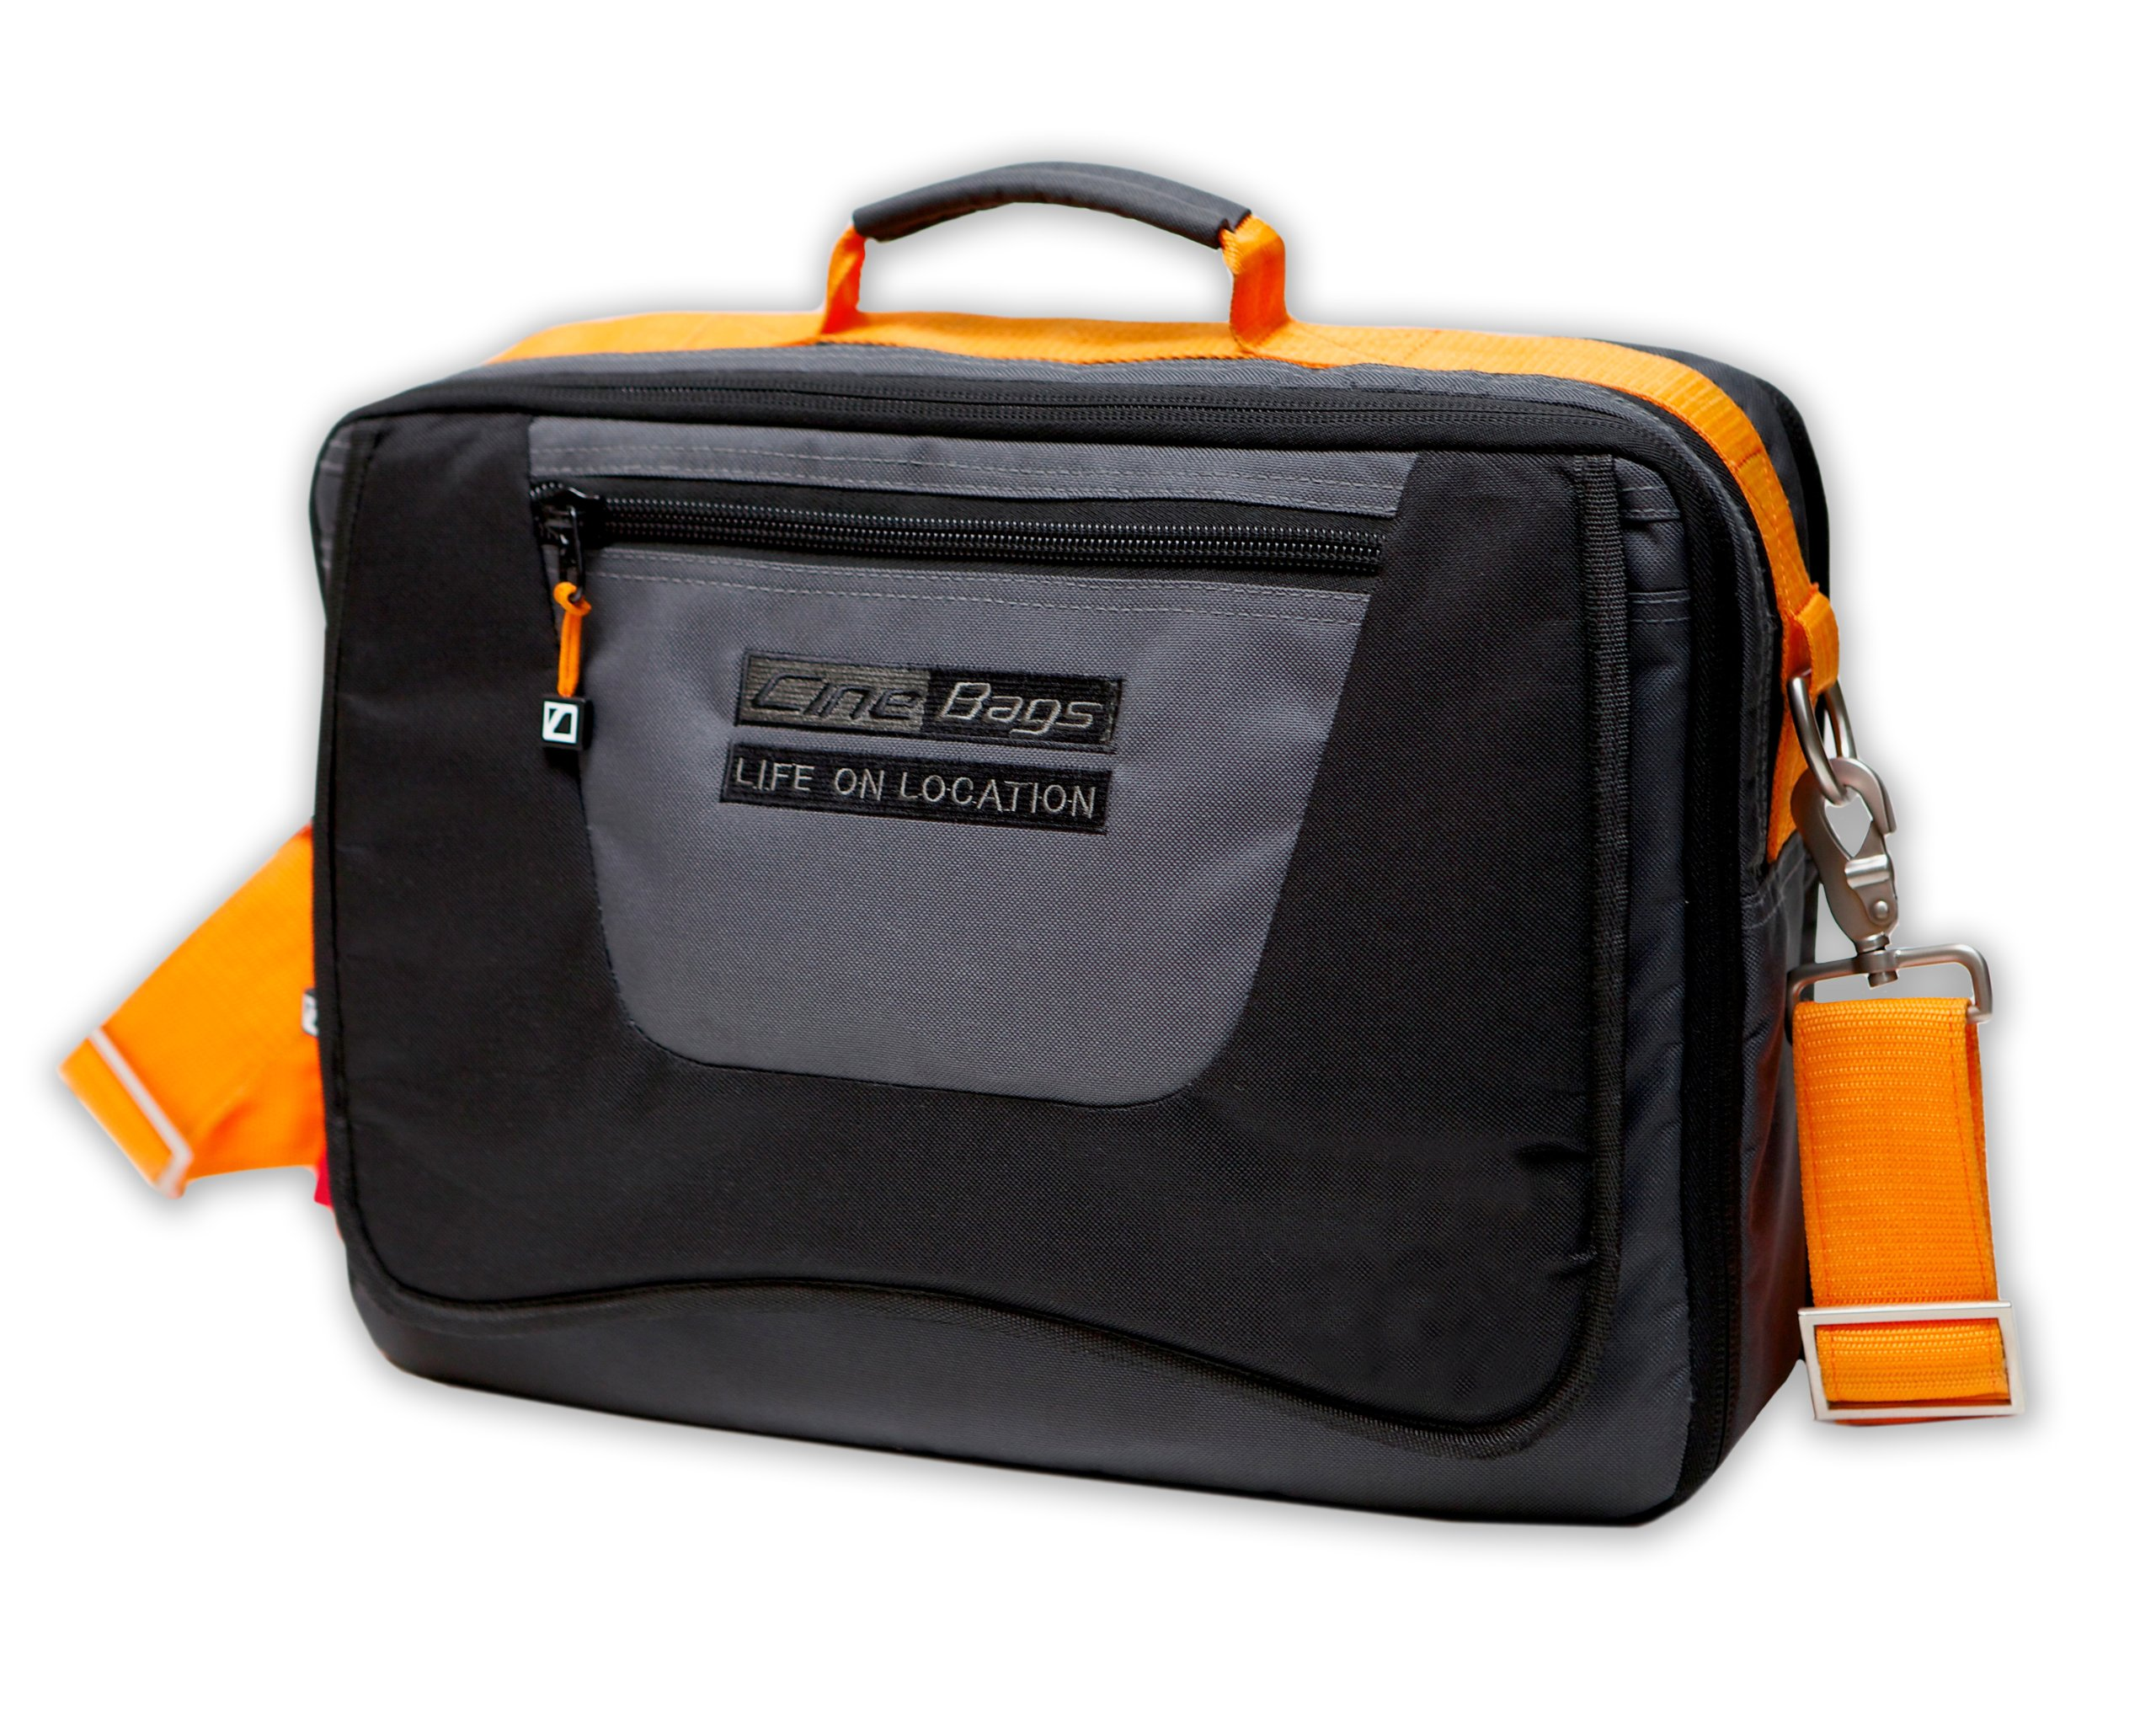 CineBags Messenger Type Laptop Bag CB-17, Black/Charcoal